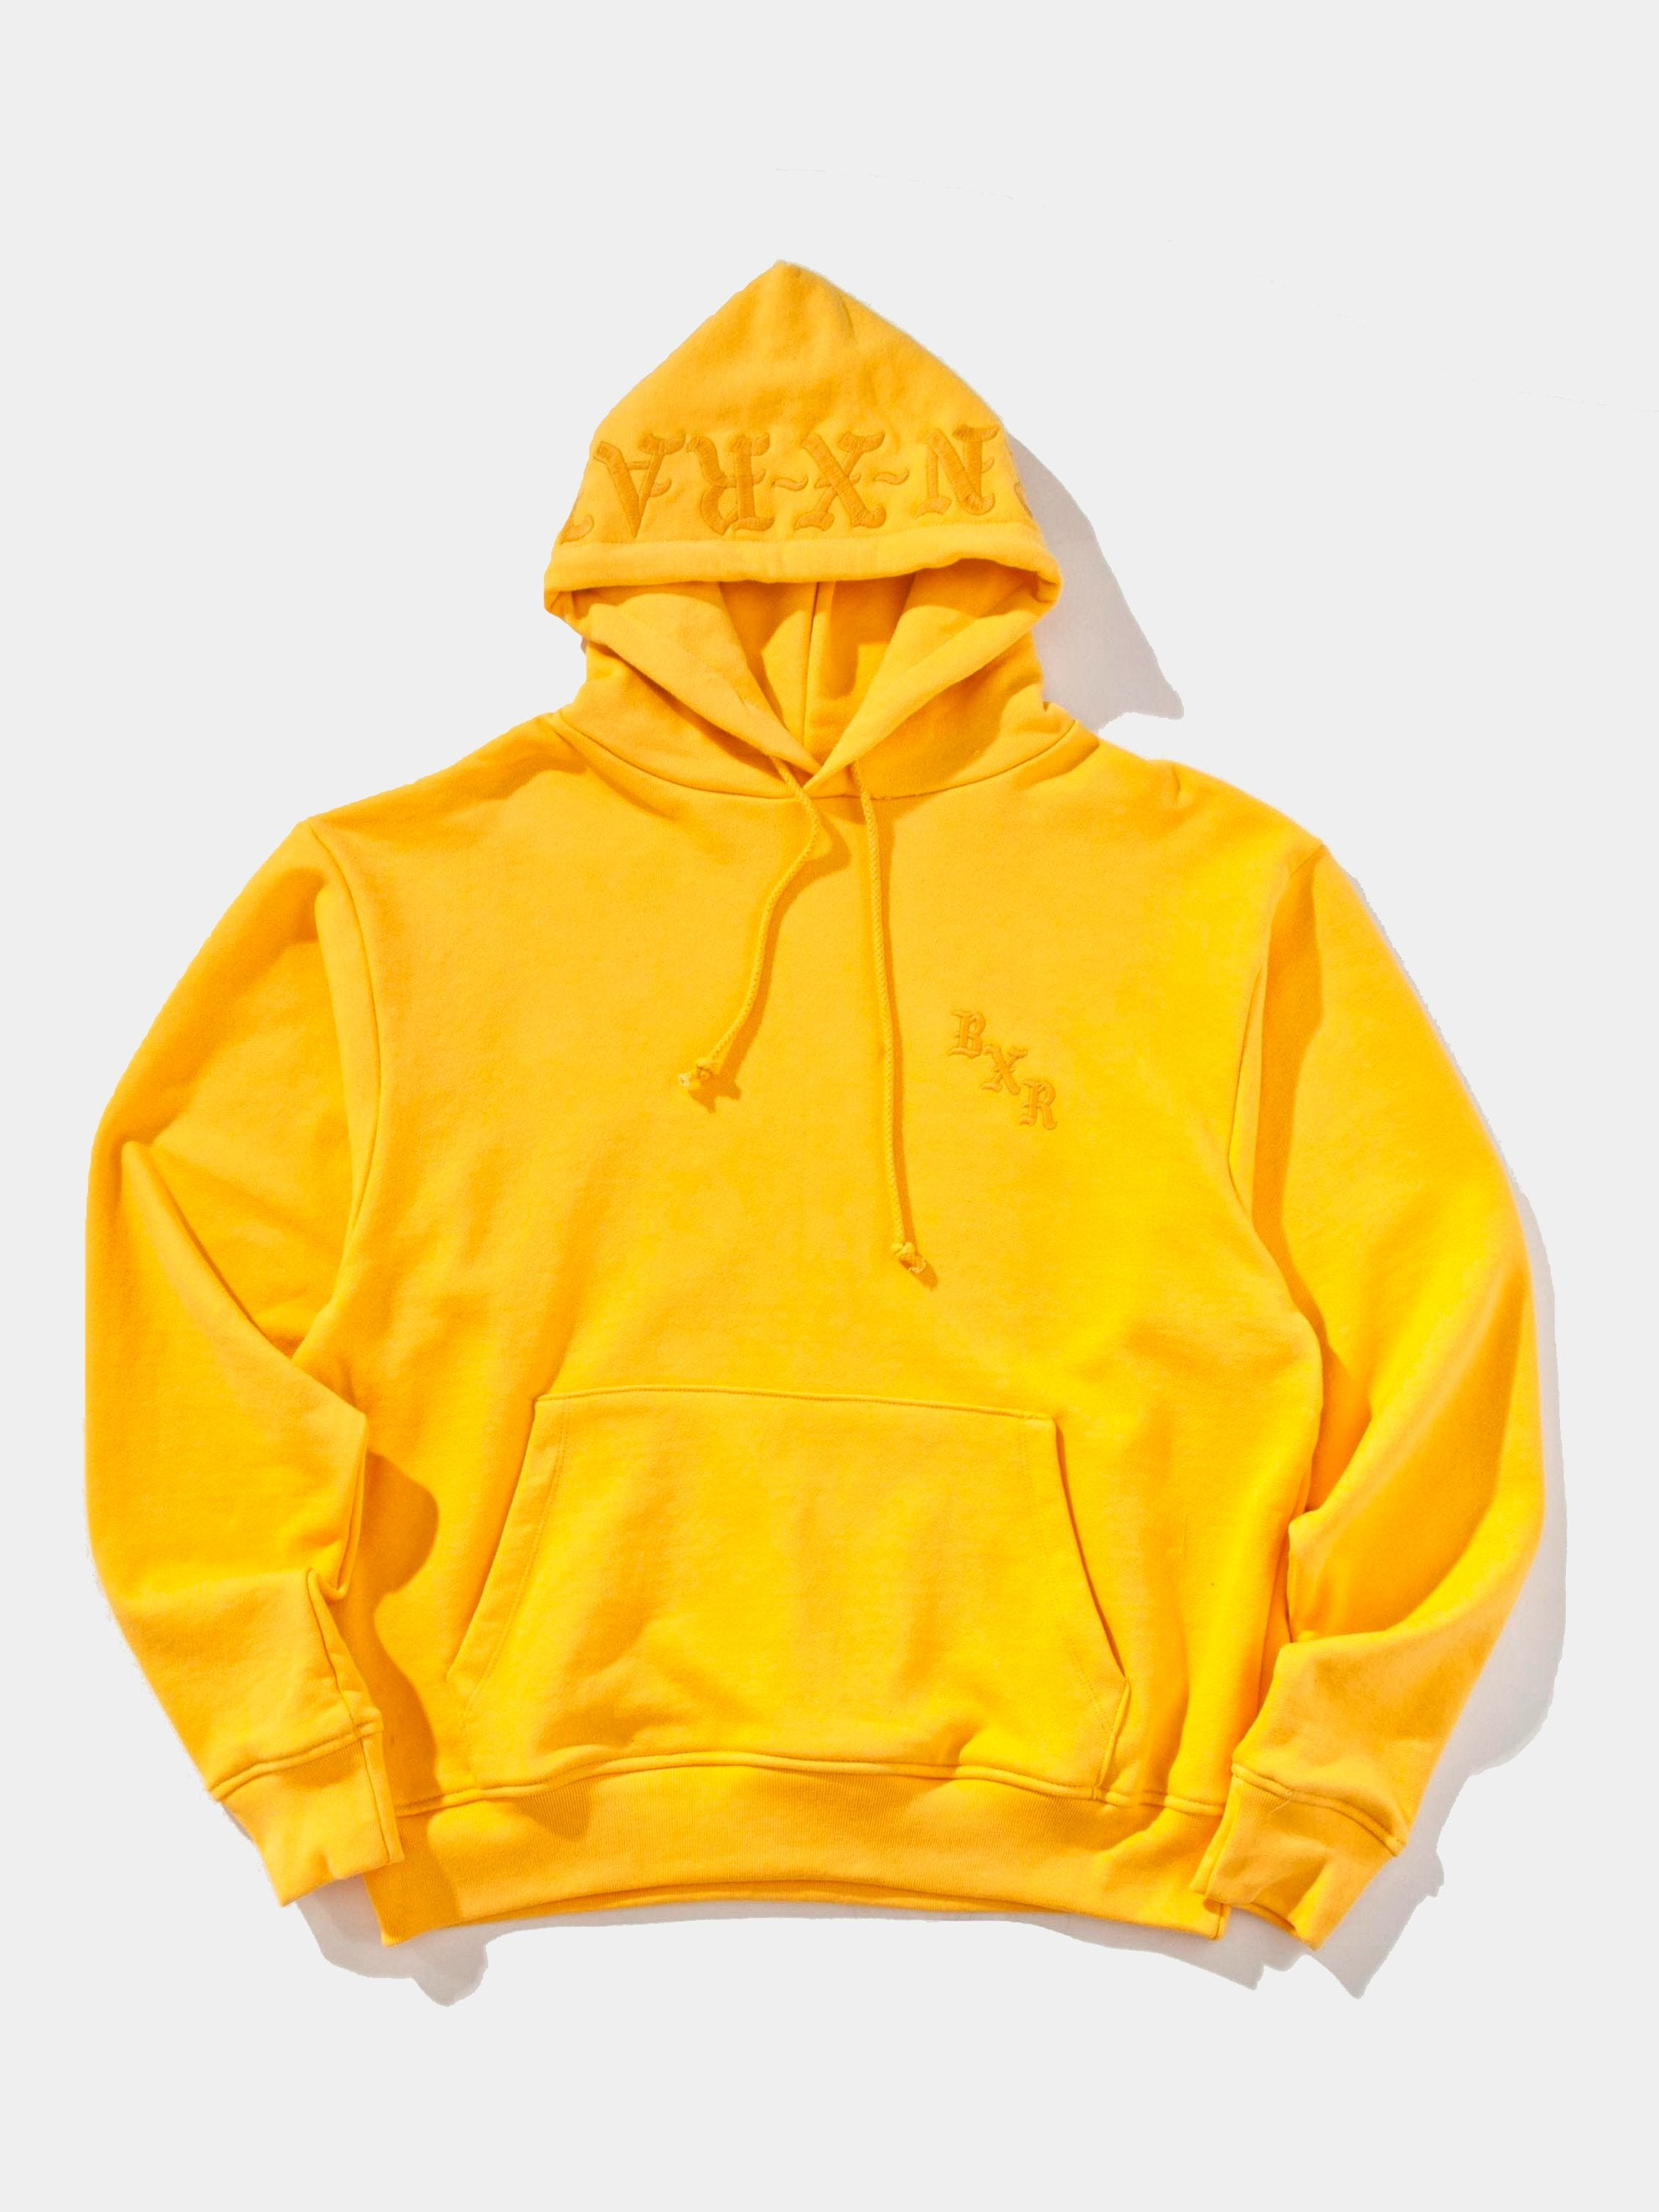 BXR Tonal Hooded Sweatshirt